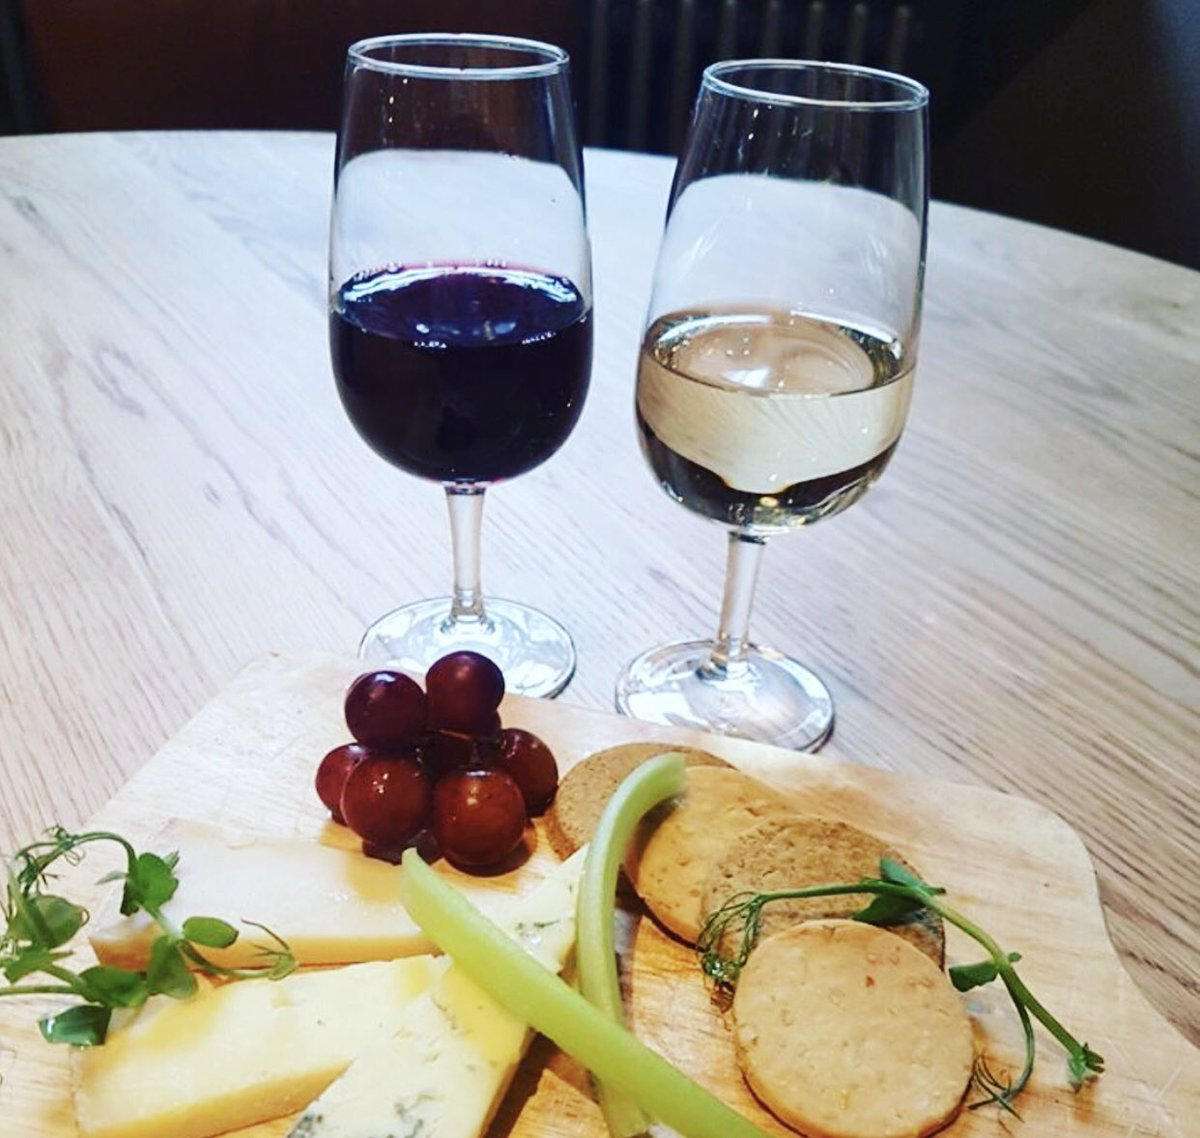 Are you a wine lover 🍷 Are you a cheese lover 🧀 Why not book in to @WhighamsEdinBar first wine tasting of the year on Wednesday the 27th of February at 6pm! #artisancheese #hiddengems #takeacloserlook #edinburghswestend